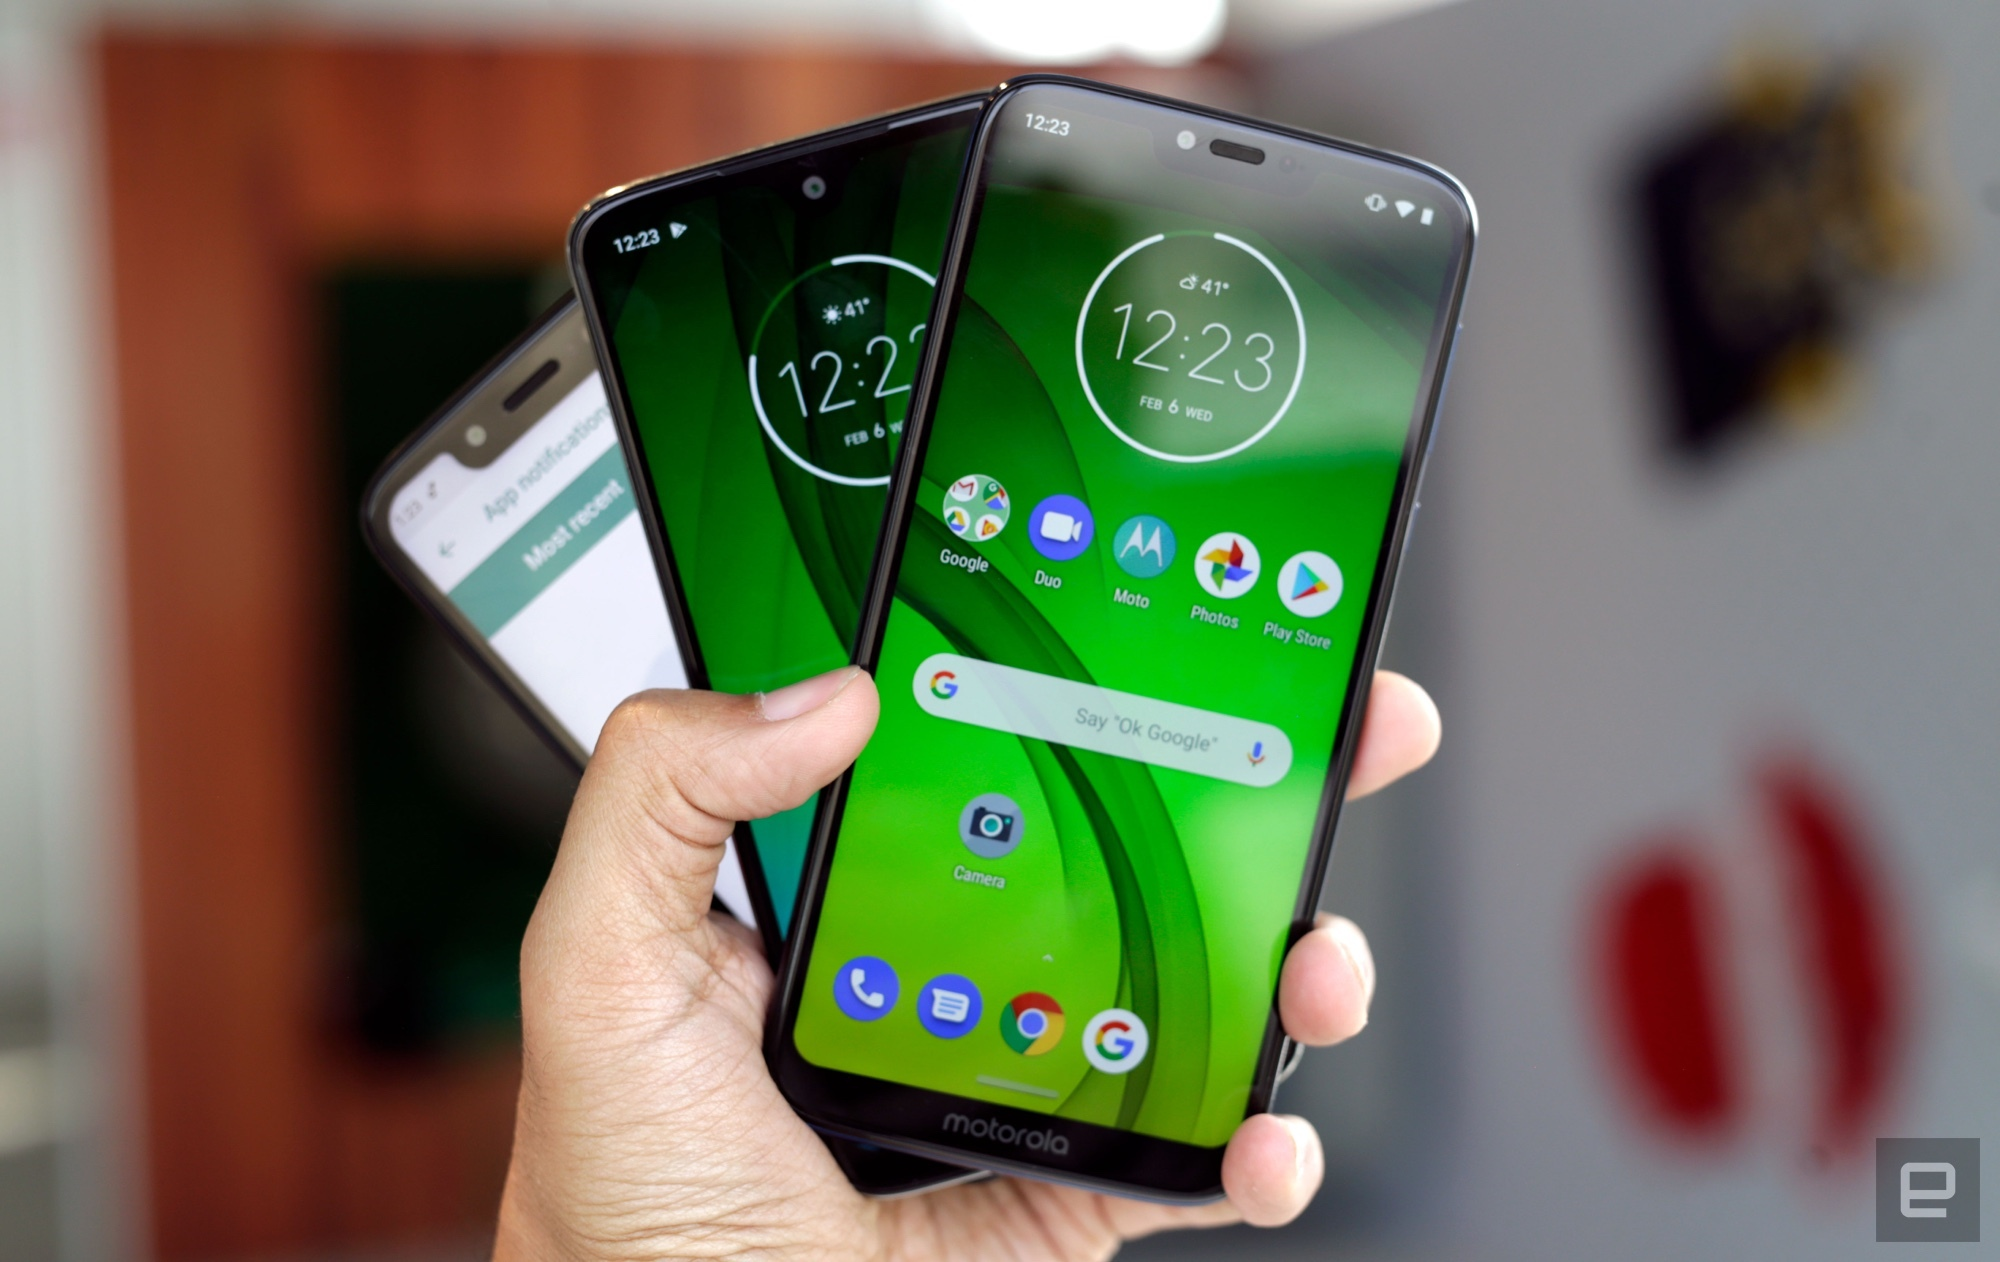 Moto G7 series. Photo from Engadget.